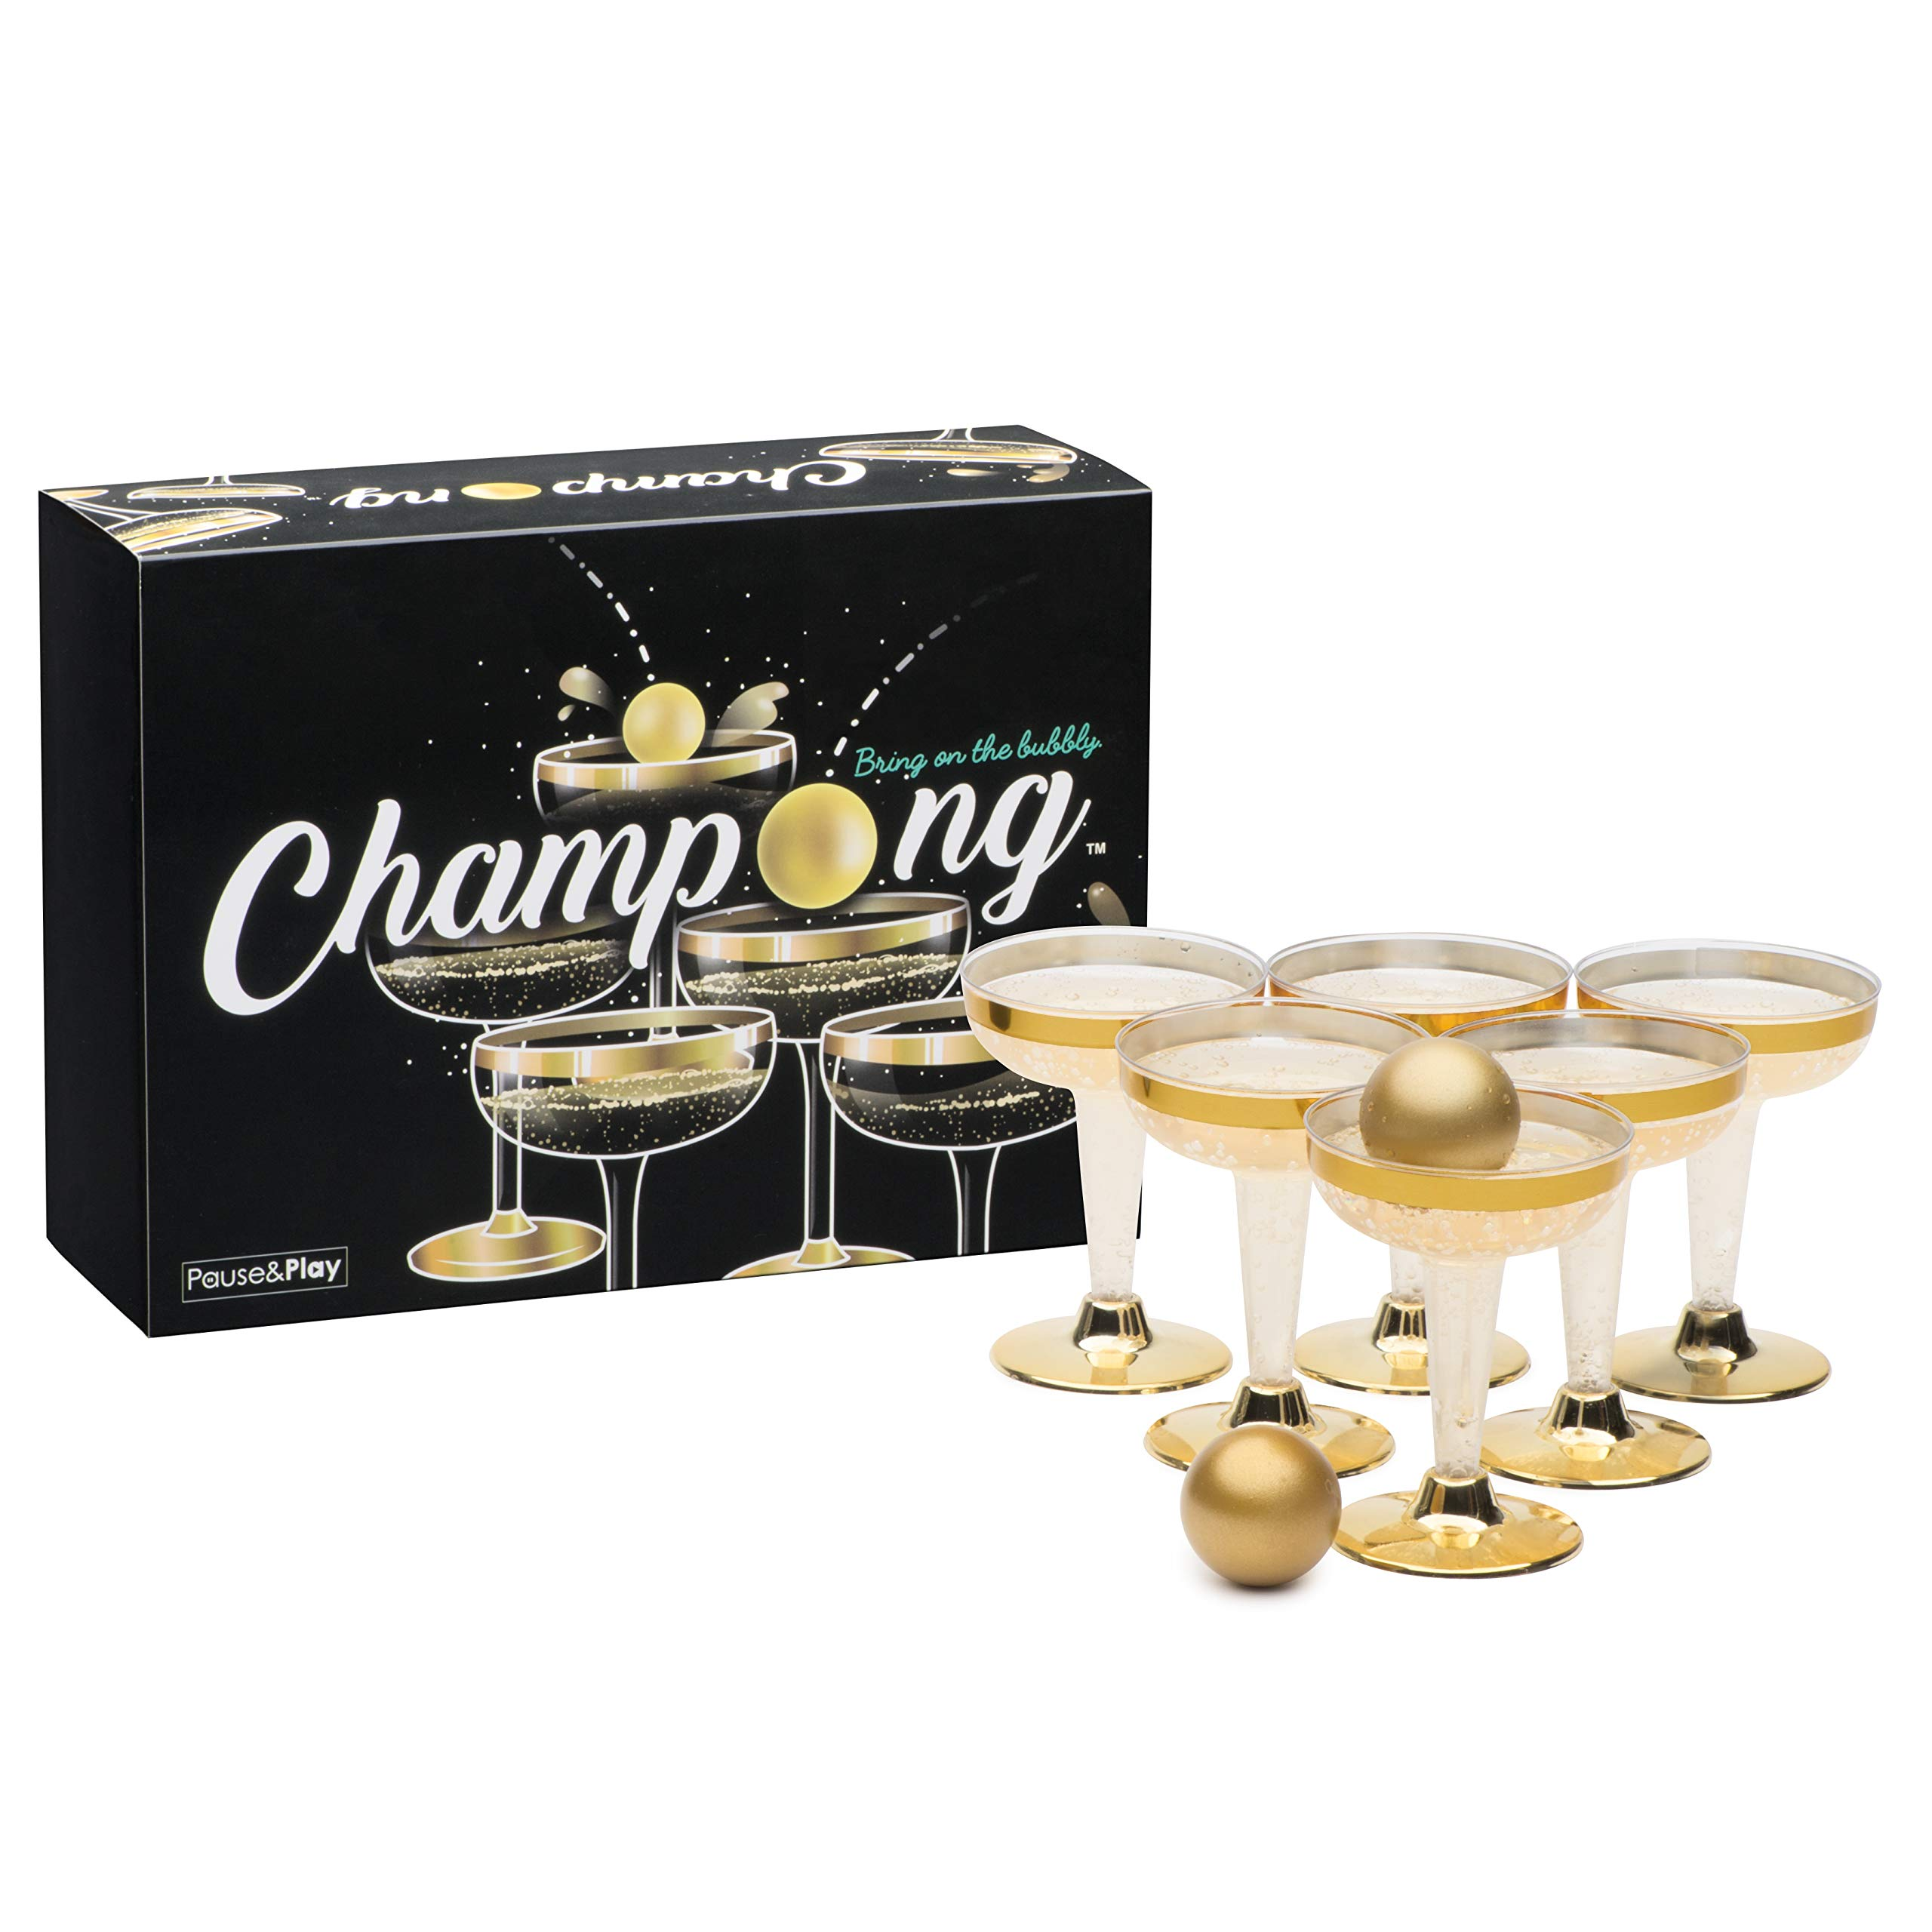 Pause&Play Champong - Luxury Kit - Party Table Prosecco Champagne Pong Game Set - for Birthday, Bachelor, Bachelorette, New Years, Celebration, Party Gift - 12 Plastic Cups and 3 Metallic Gold Balls